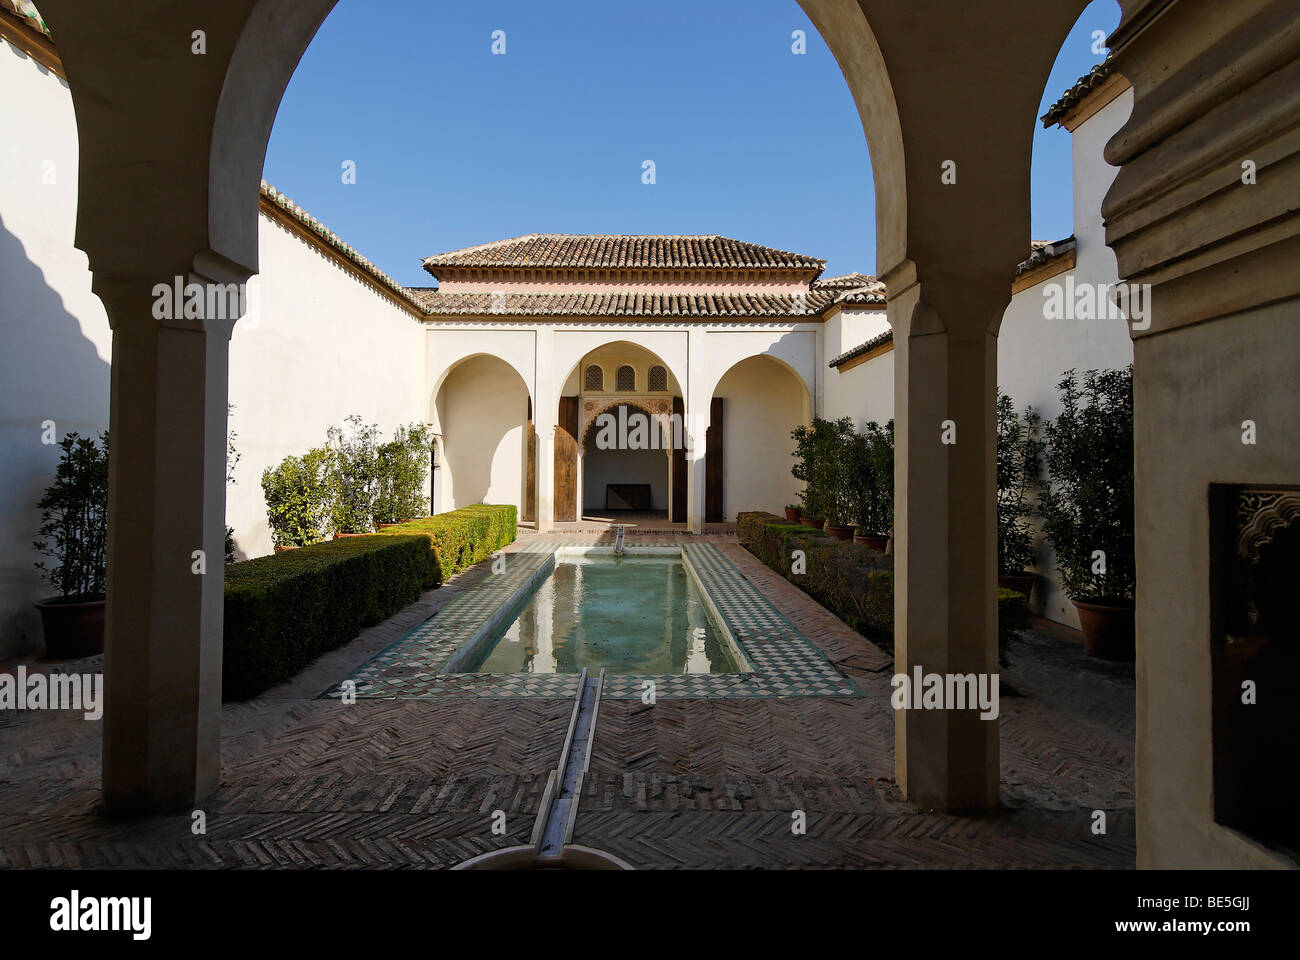 Patio de la Alberca, Alcazaba castle, Malaga, Andalusia, Spain, Europe - Stock Image